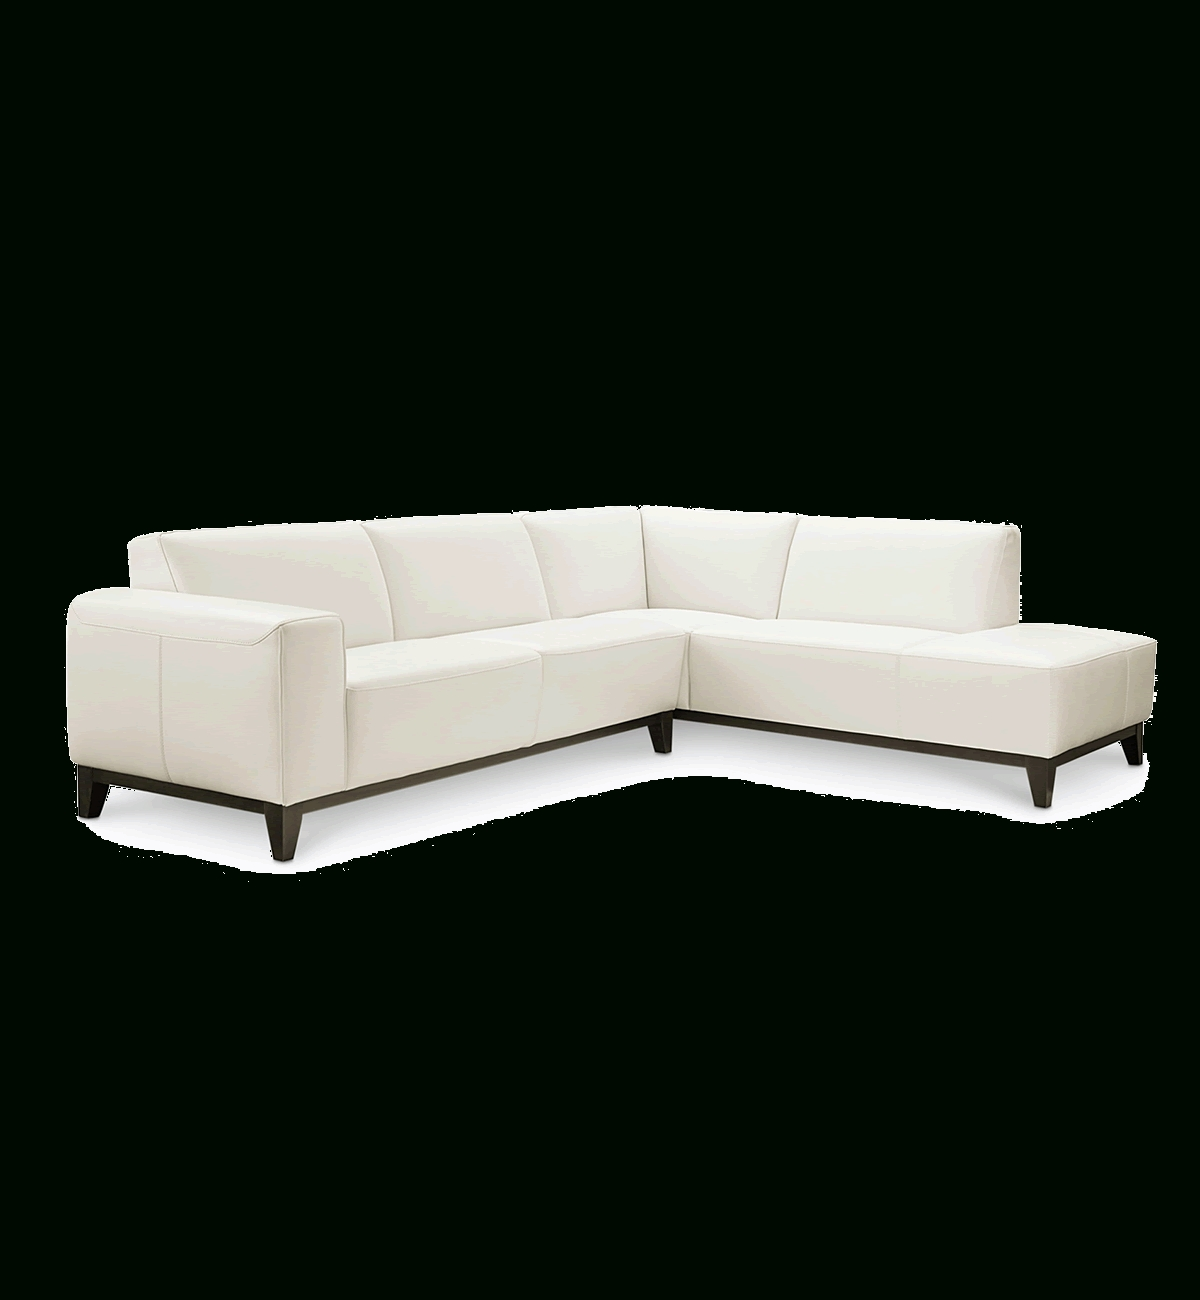 Couches And Sofas – Macy's Throughout Well Known Macys Sofas (View 8 of 20)